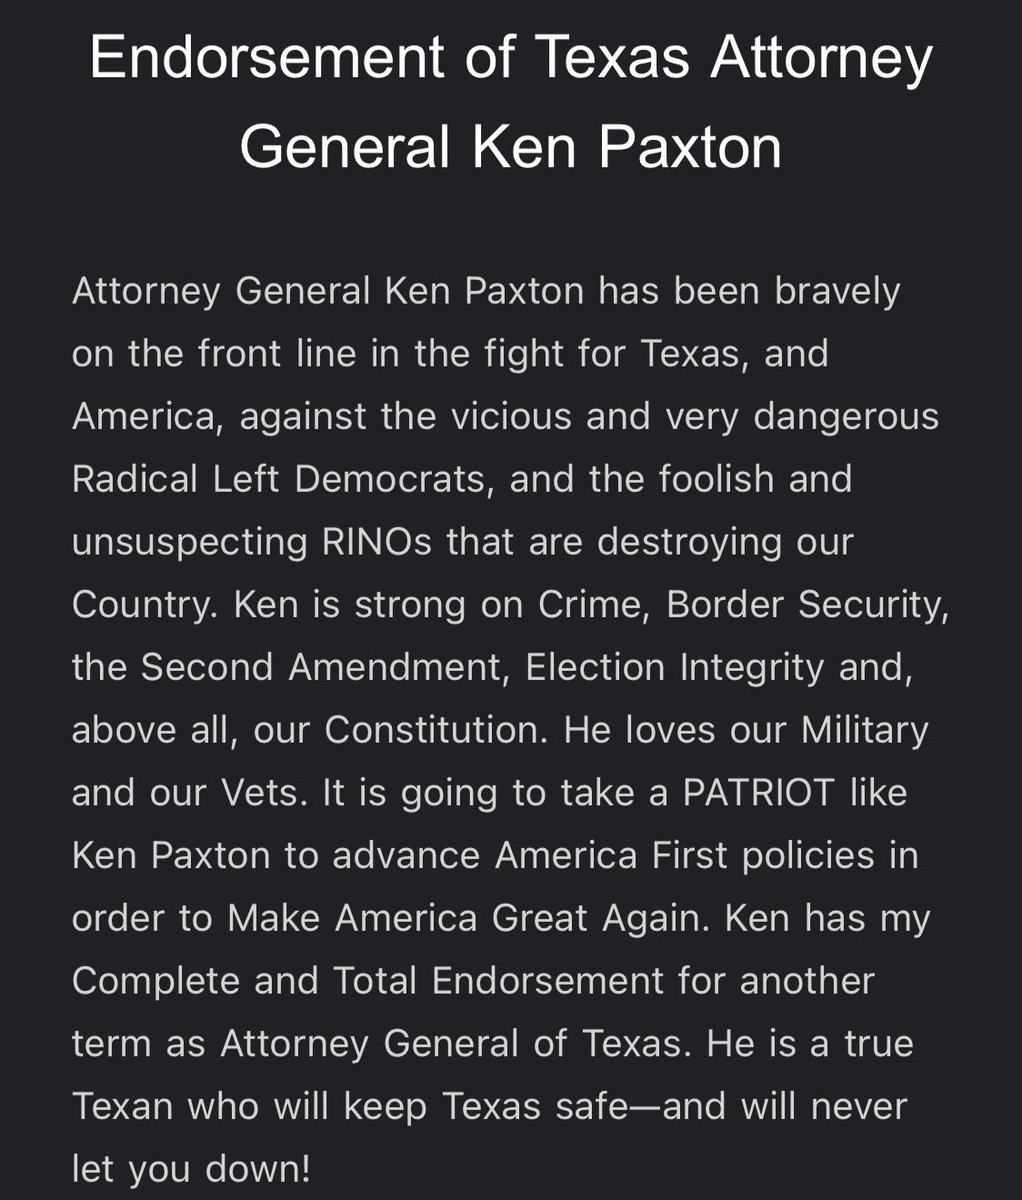 Just in: Trump's endorsement in the AG primary goes to @KenPaxtonTX https://t.co/9MqGIPnepI